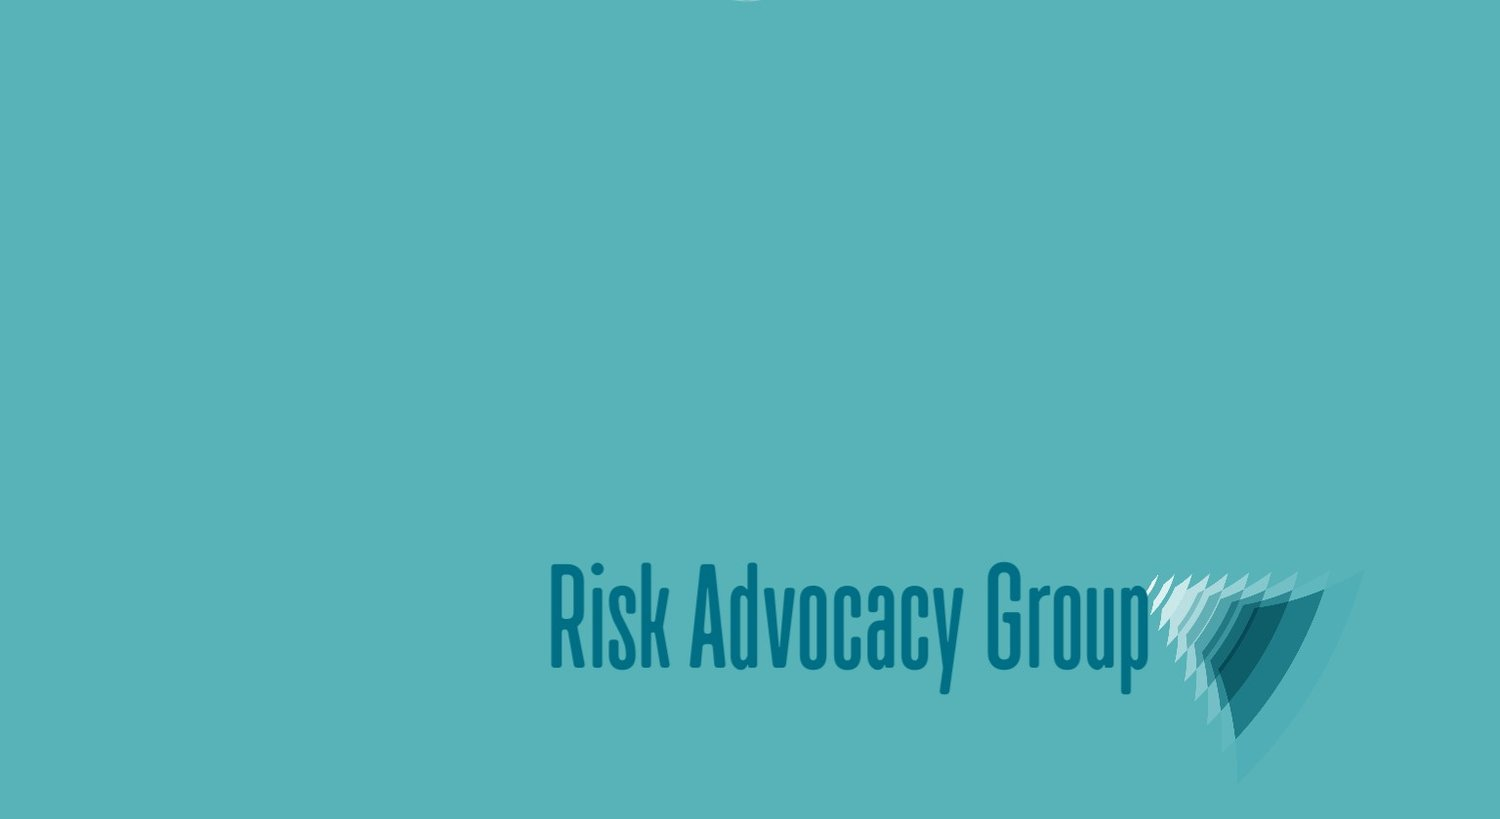 Risk Advocacy Group